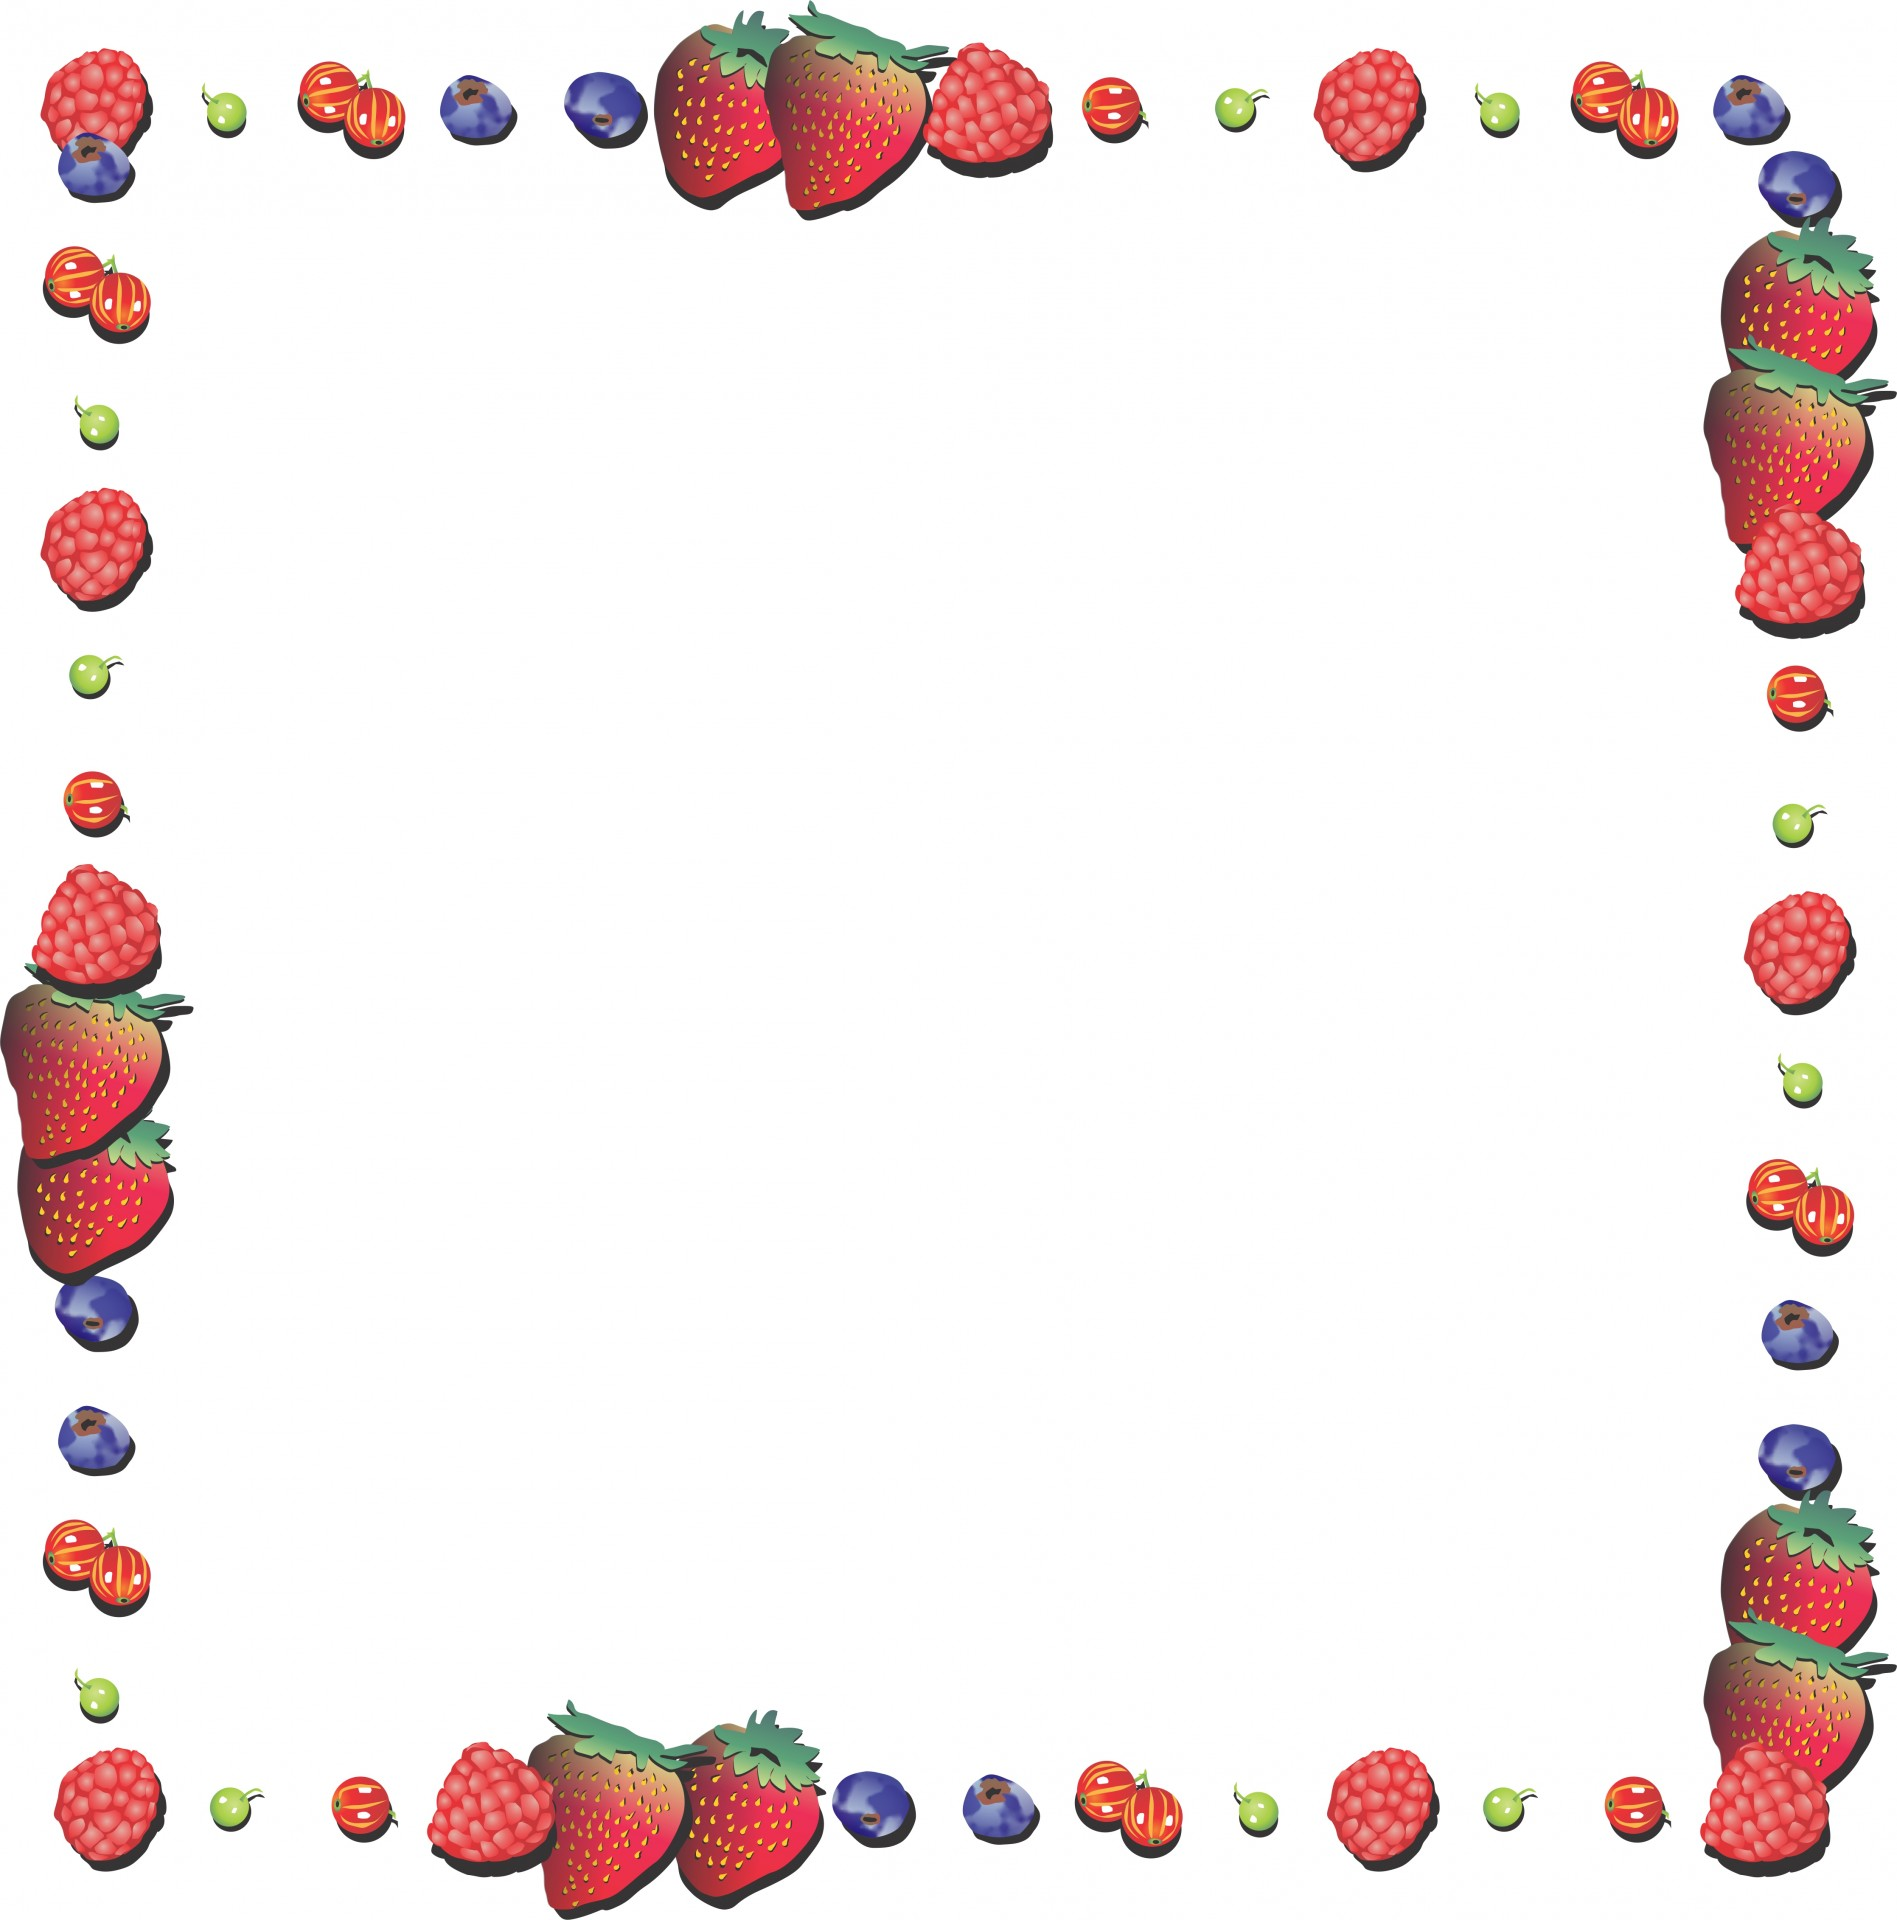 Blueberry clipart frame. Strawberry free stock photo